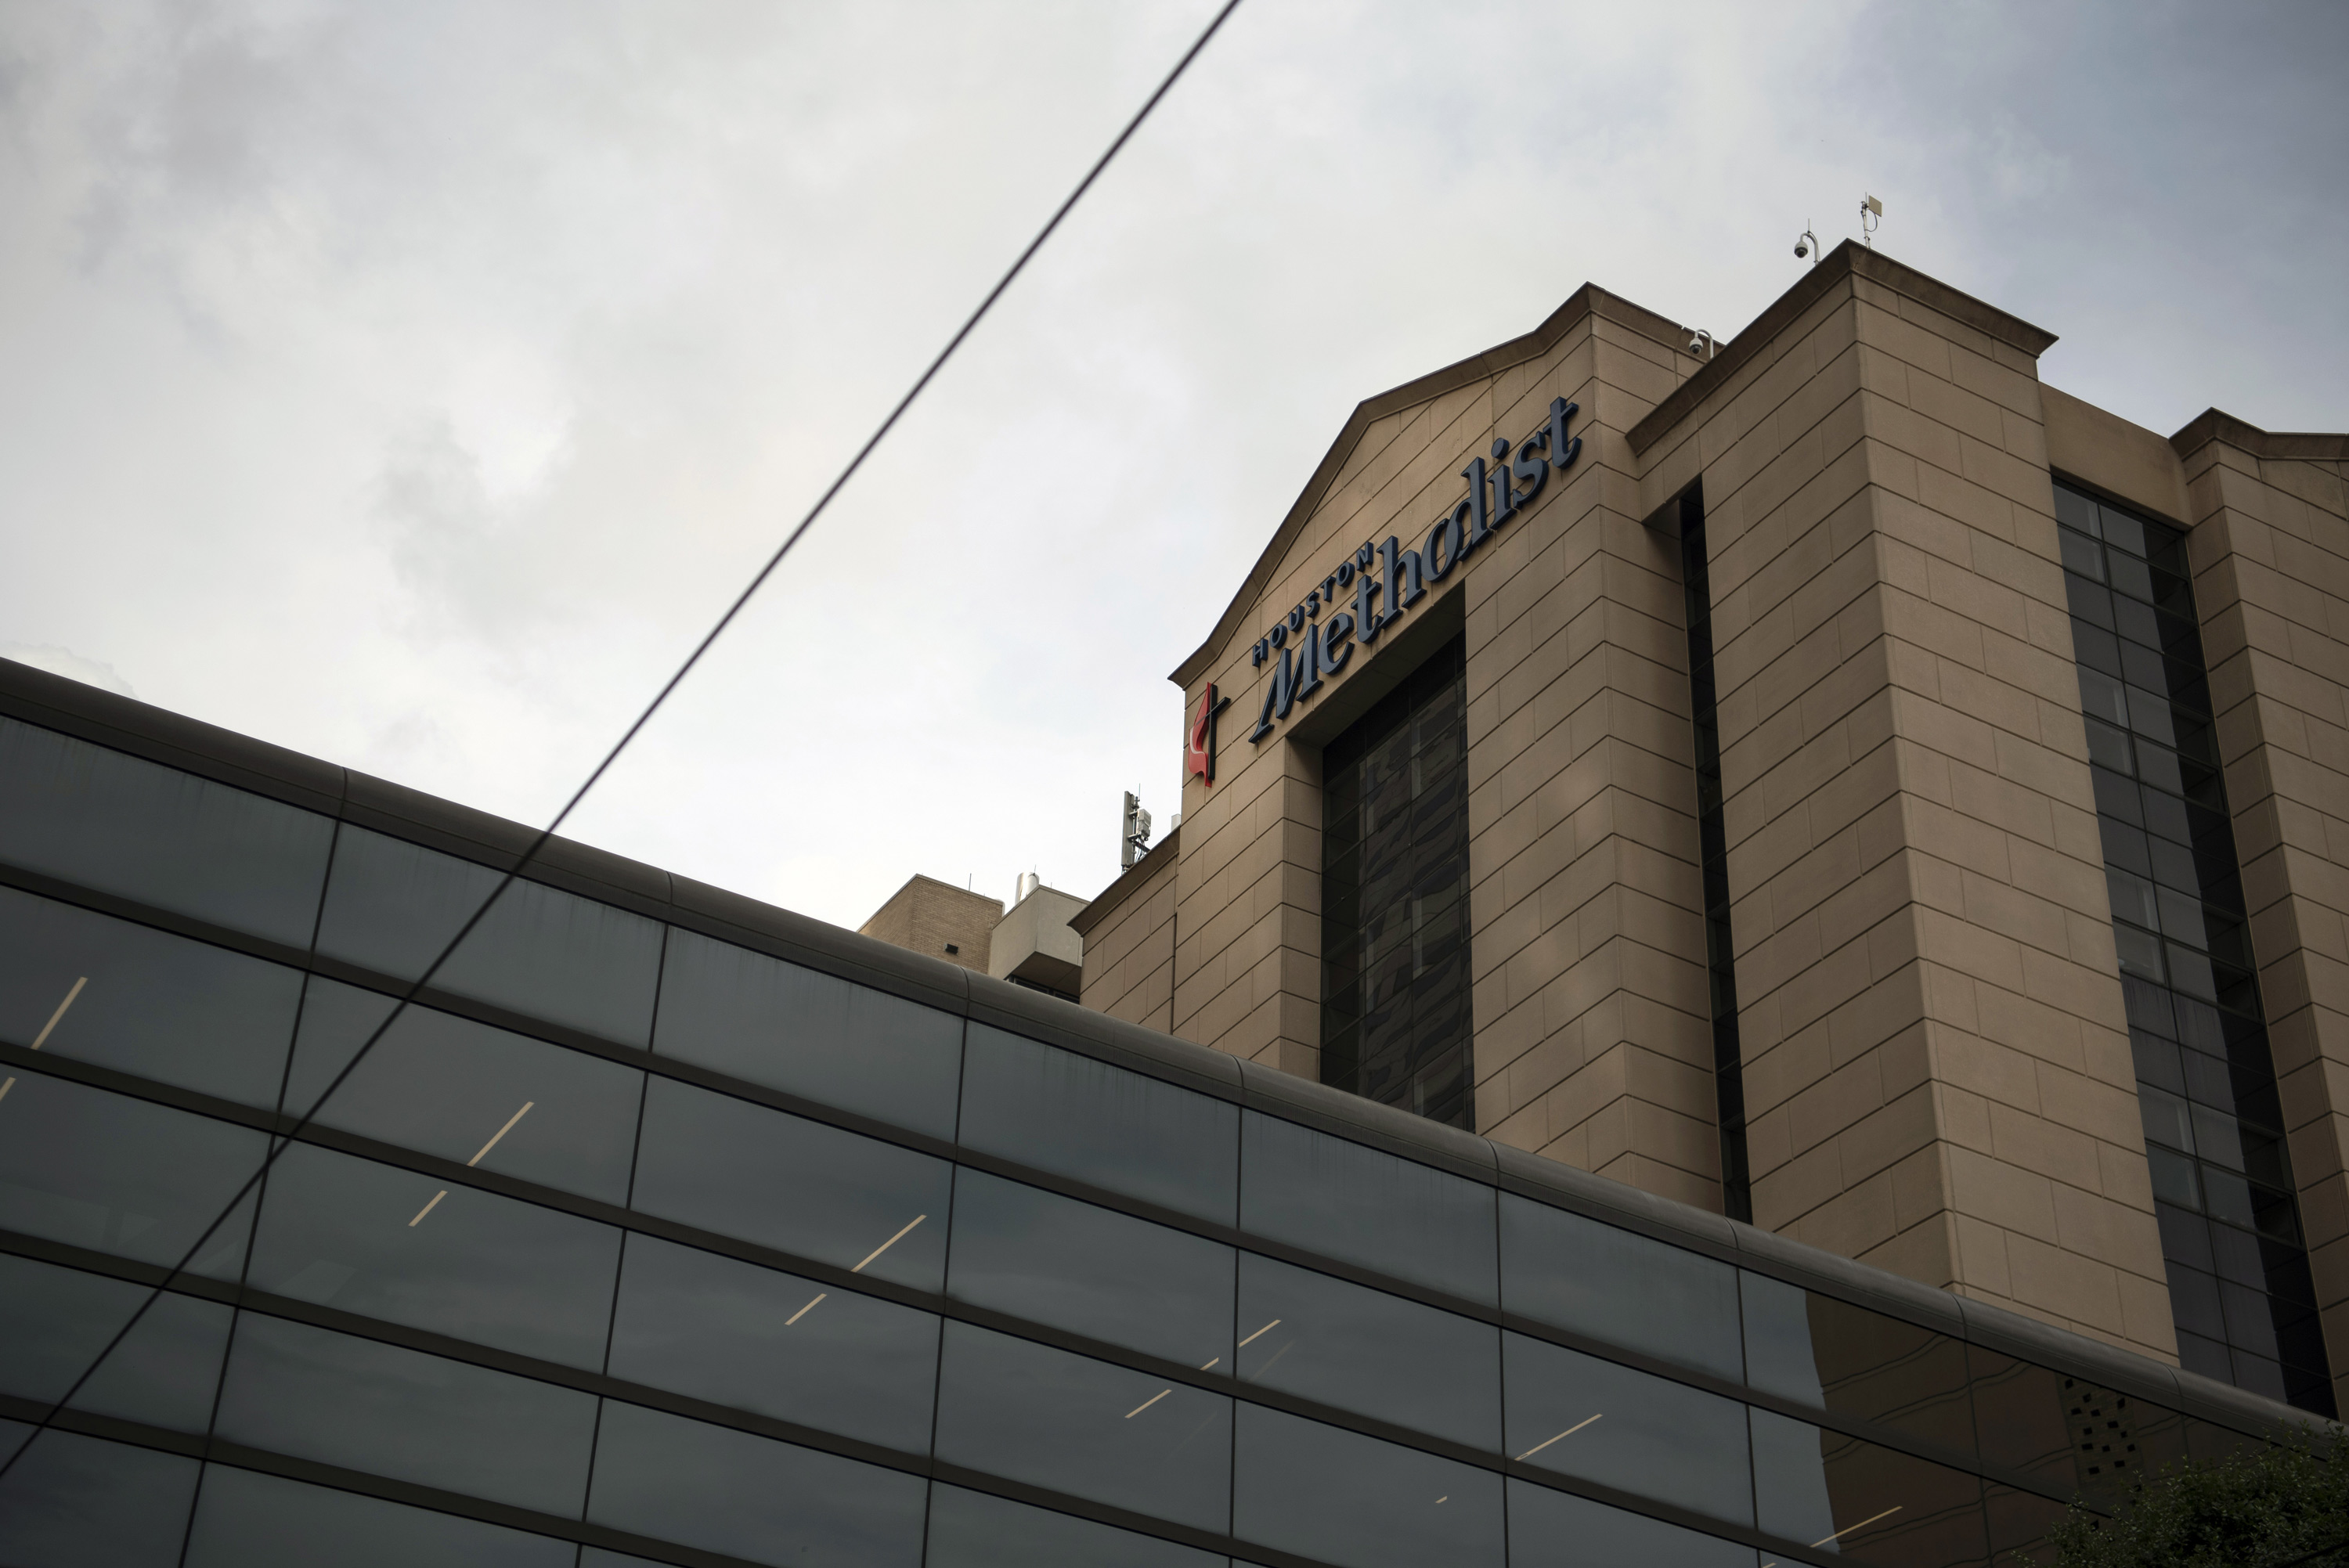 Houston Methodist Hospital stands at the Texas Medical Center campus in Houston, Texas, on June 24, 2020.